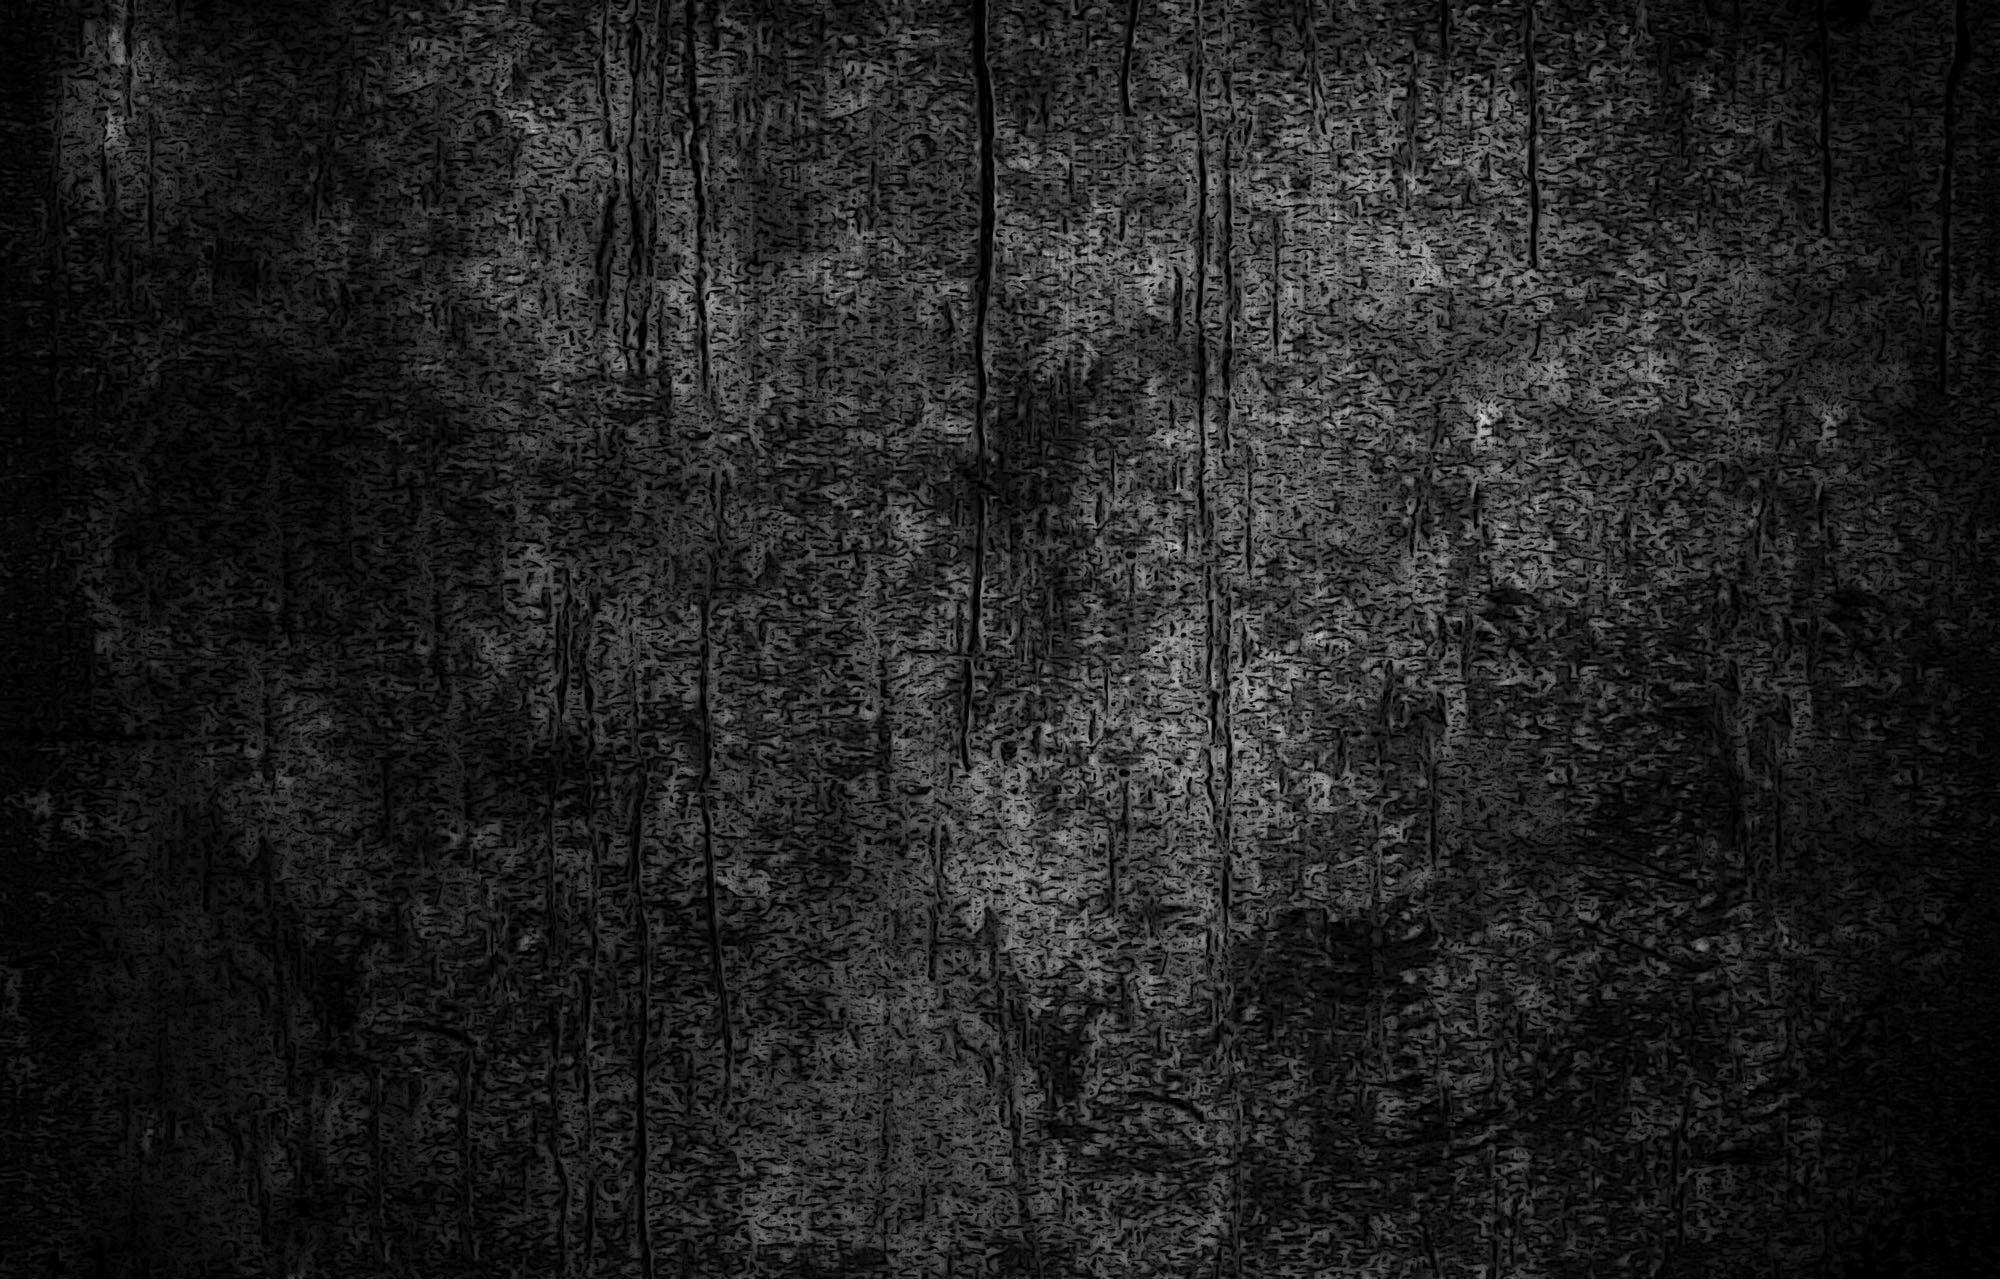 Dark Grunge Background Tumblr 2000x1279